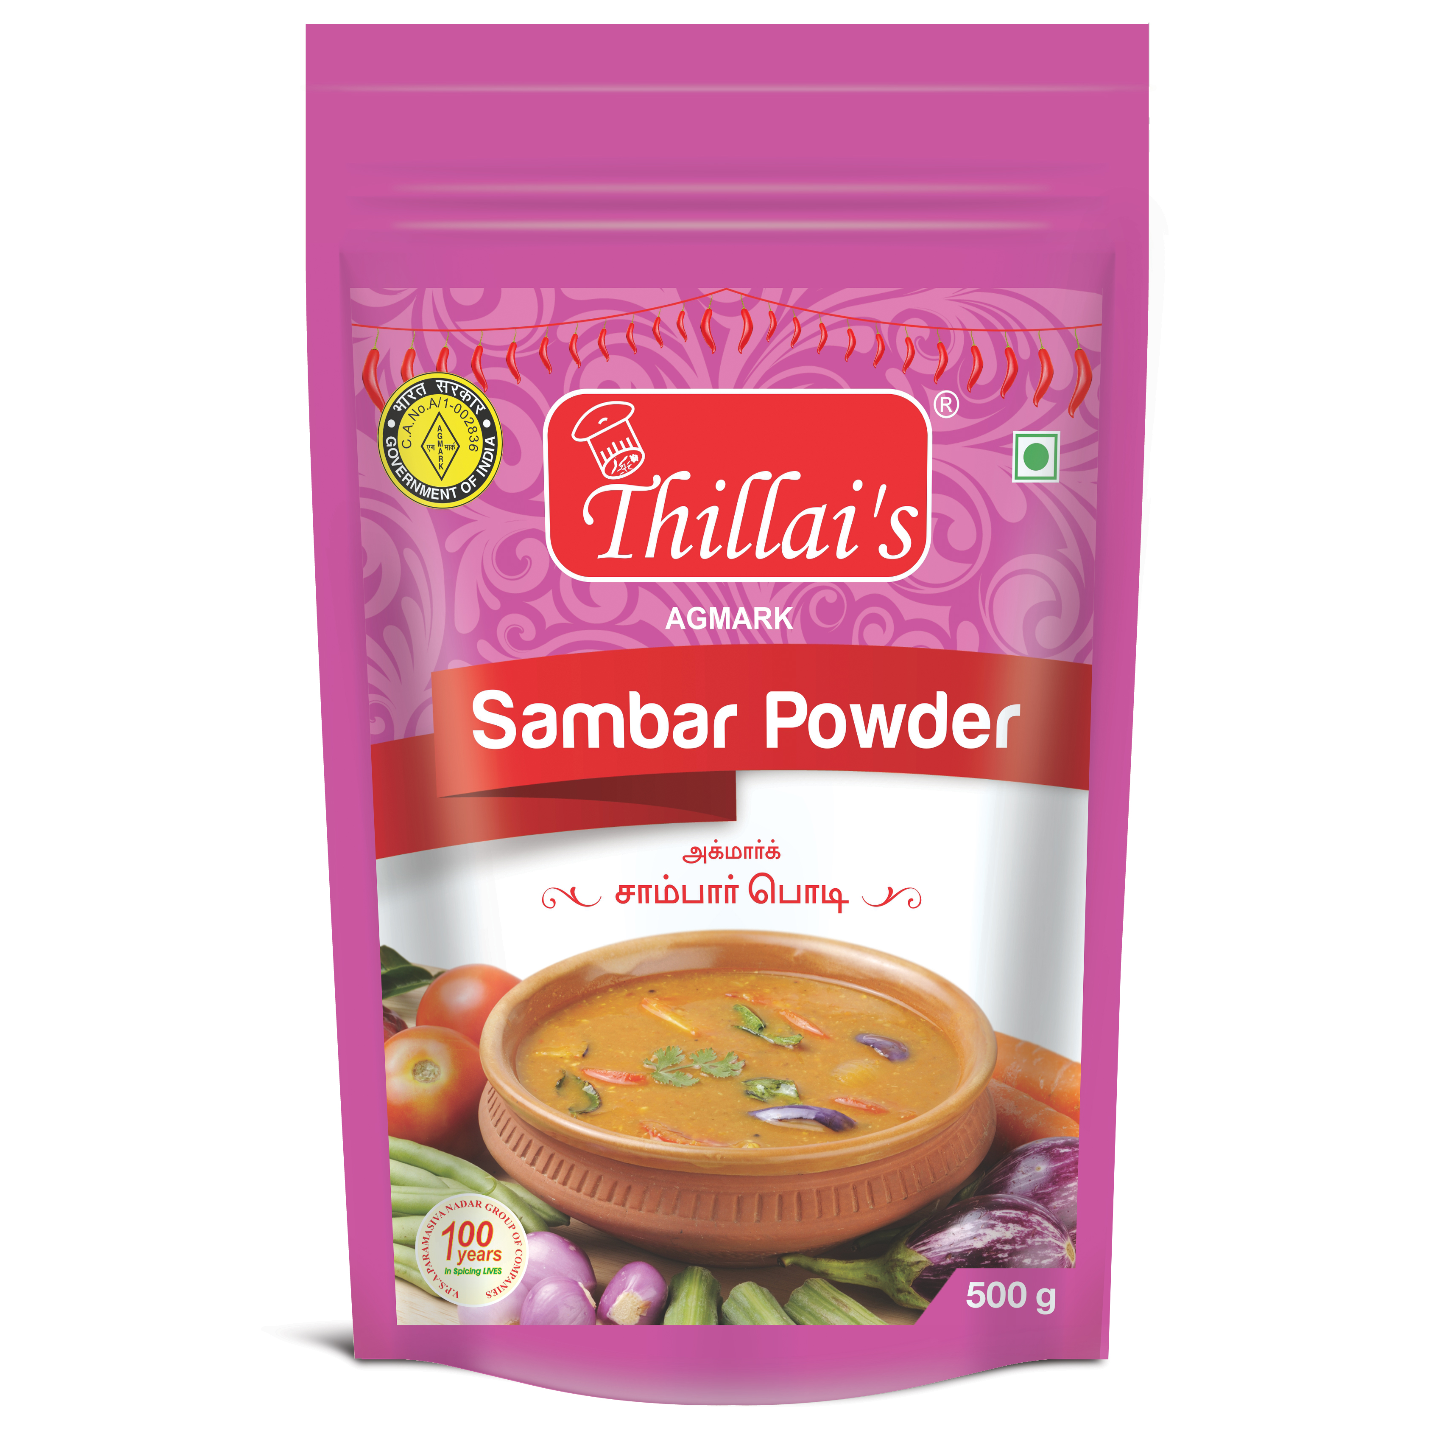 Thillais Sambar Powder-500g